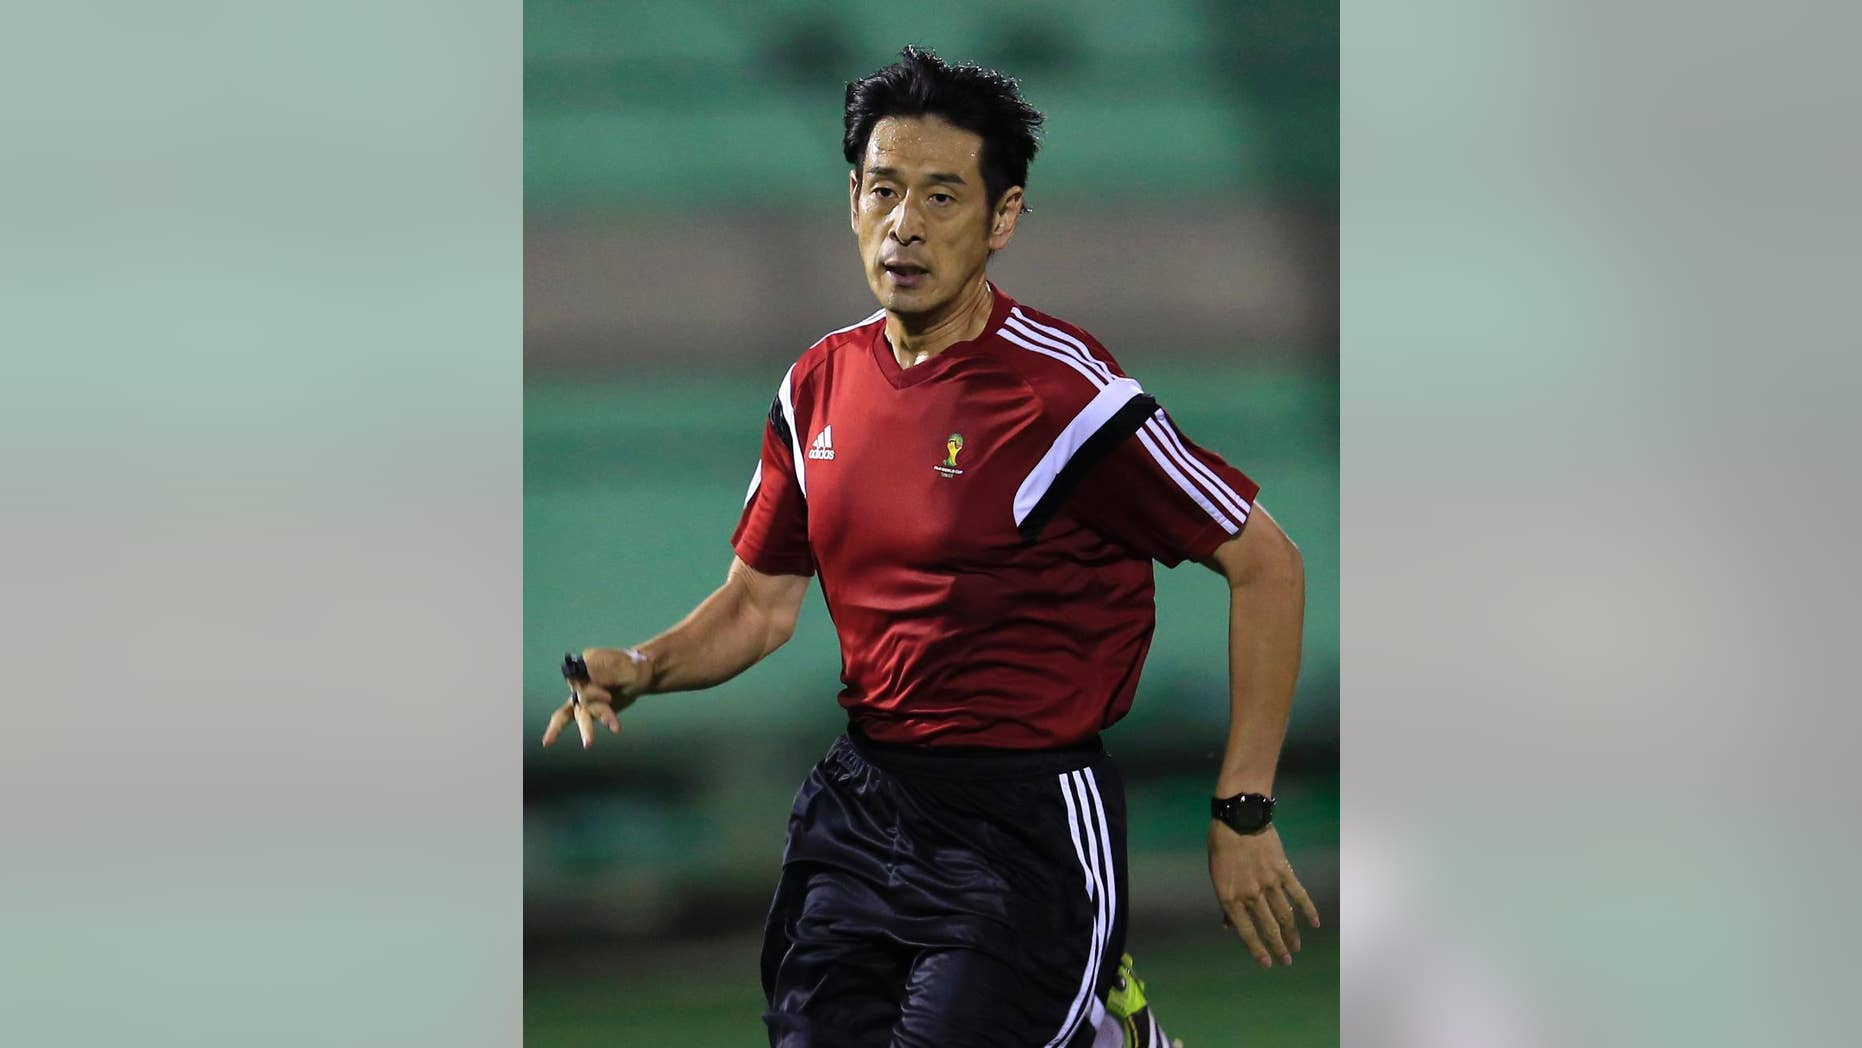 Referee Yuichi Nishimura from Japan runs during a referee's training session in Rio de Janeiro, Brazil, Friday, June 6, 2014. Brazil is hosting the World Cup soccer tournament that starts June 12. (AP Photo/Hassan Ammar)